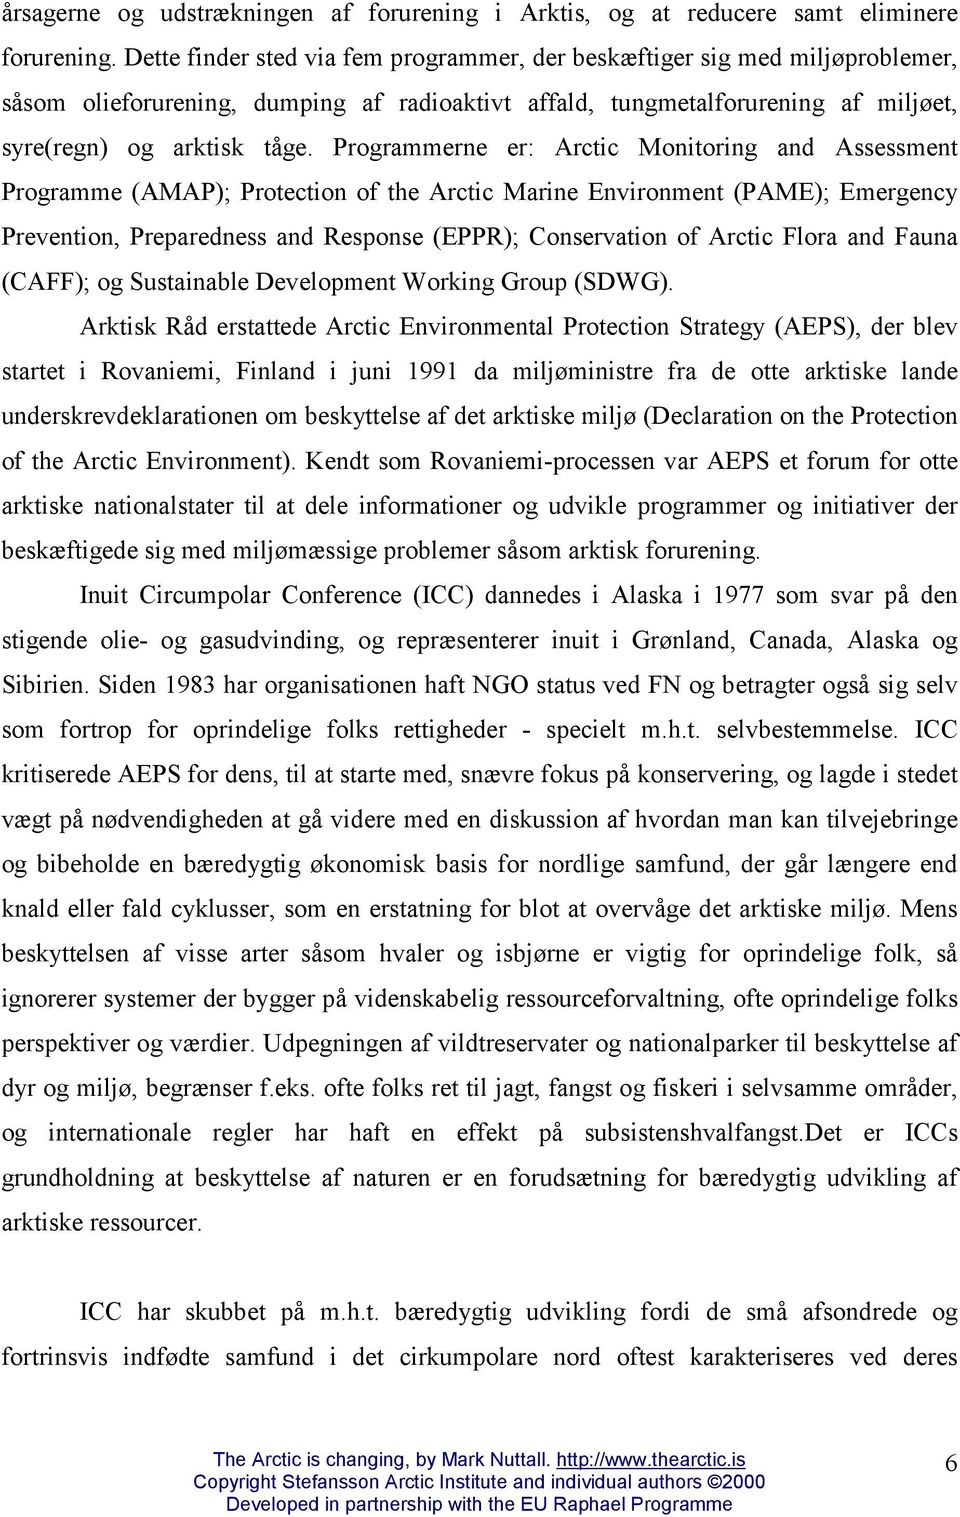 Programmerne er: Arctic Monitoring and Assessment Programme (AMAP); Protection of the Arctic Marine Environment (PAME); Emergency Prevention, Preparedness and Response (EPPR); Conservation of Arctic